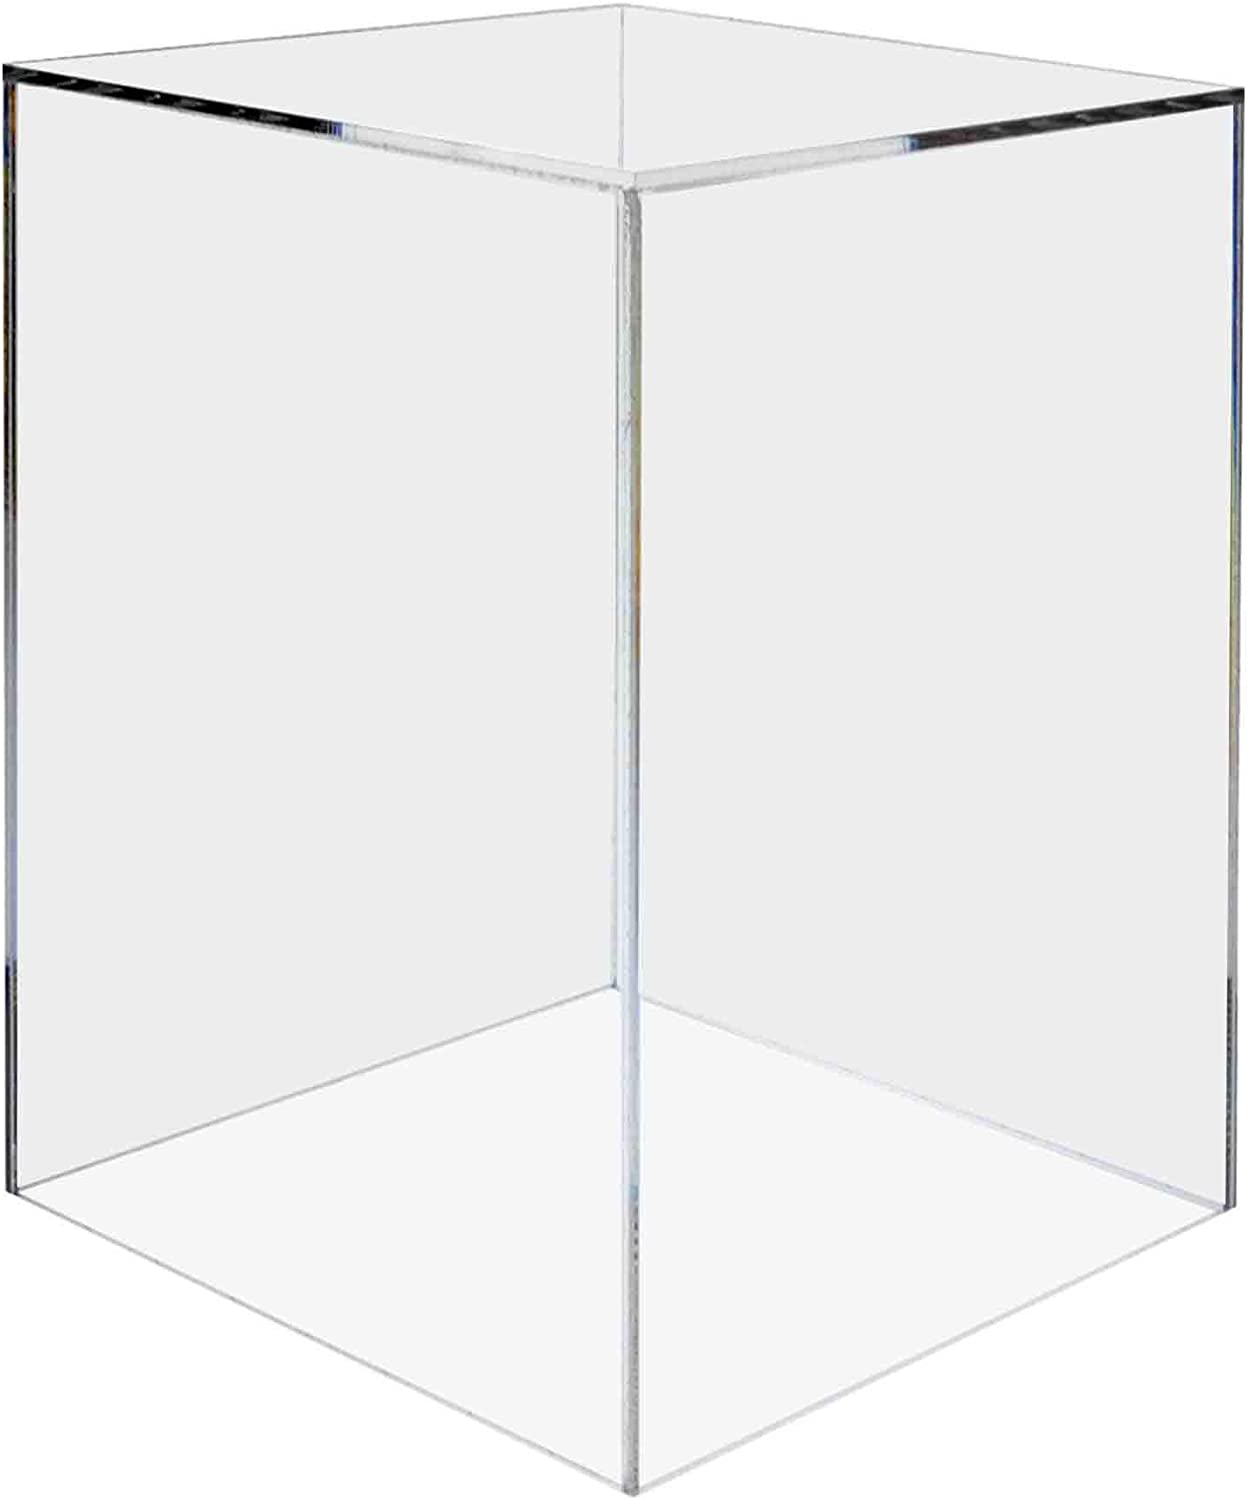 Marketing Holders Pedestal Art Stand Collect Austin Mall Display Decor Max 86% OFF Easel